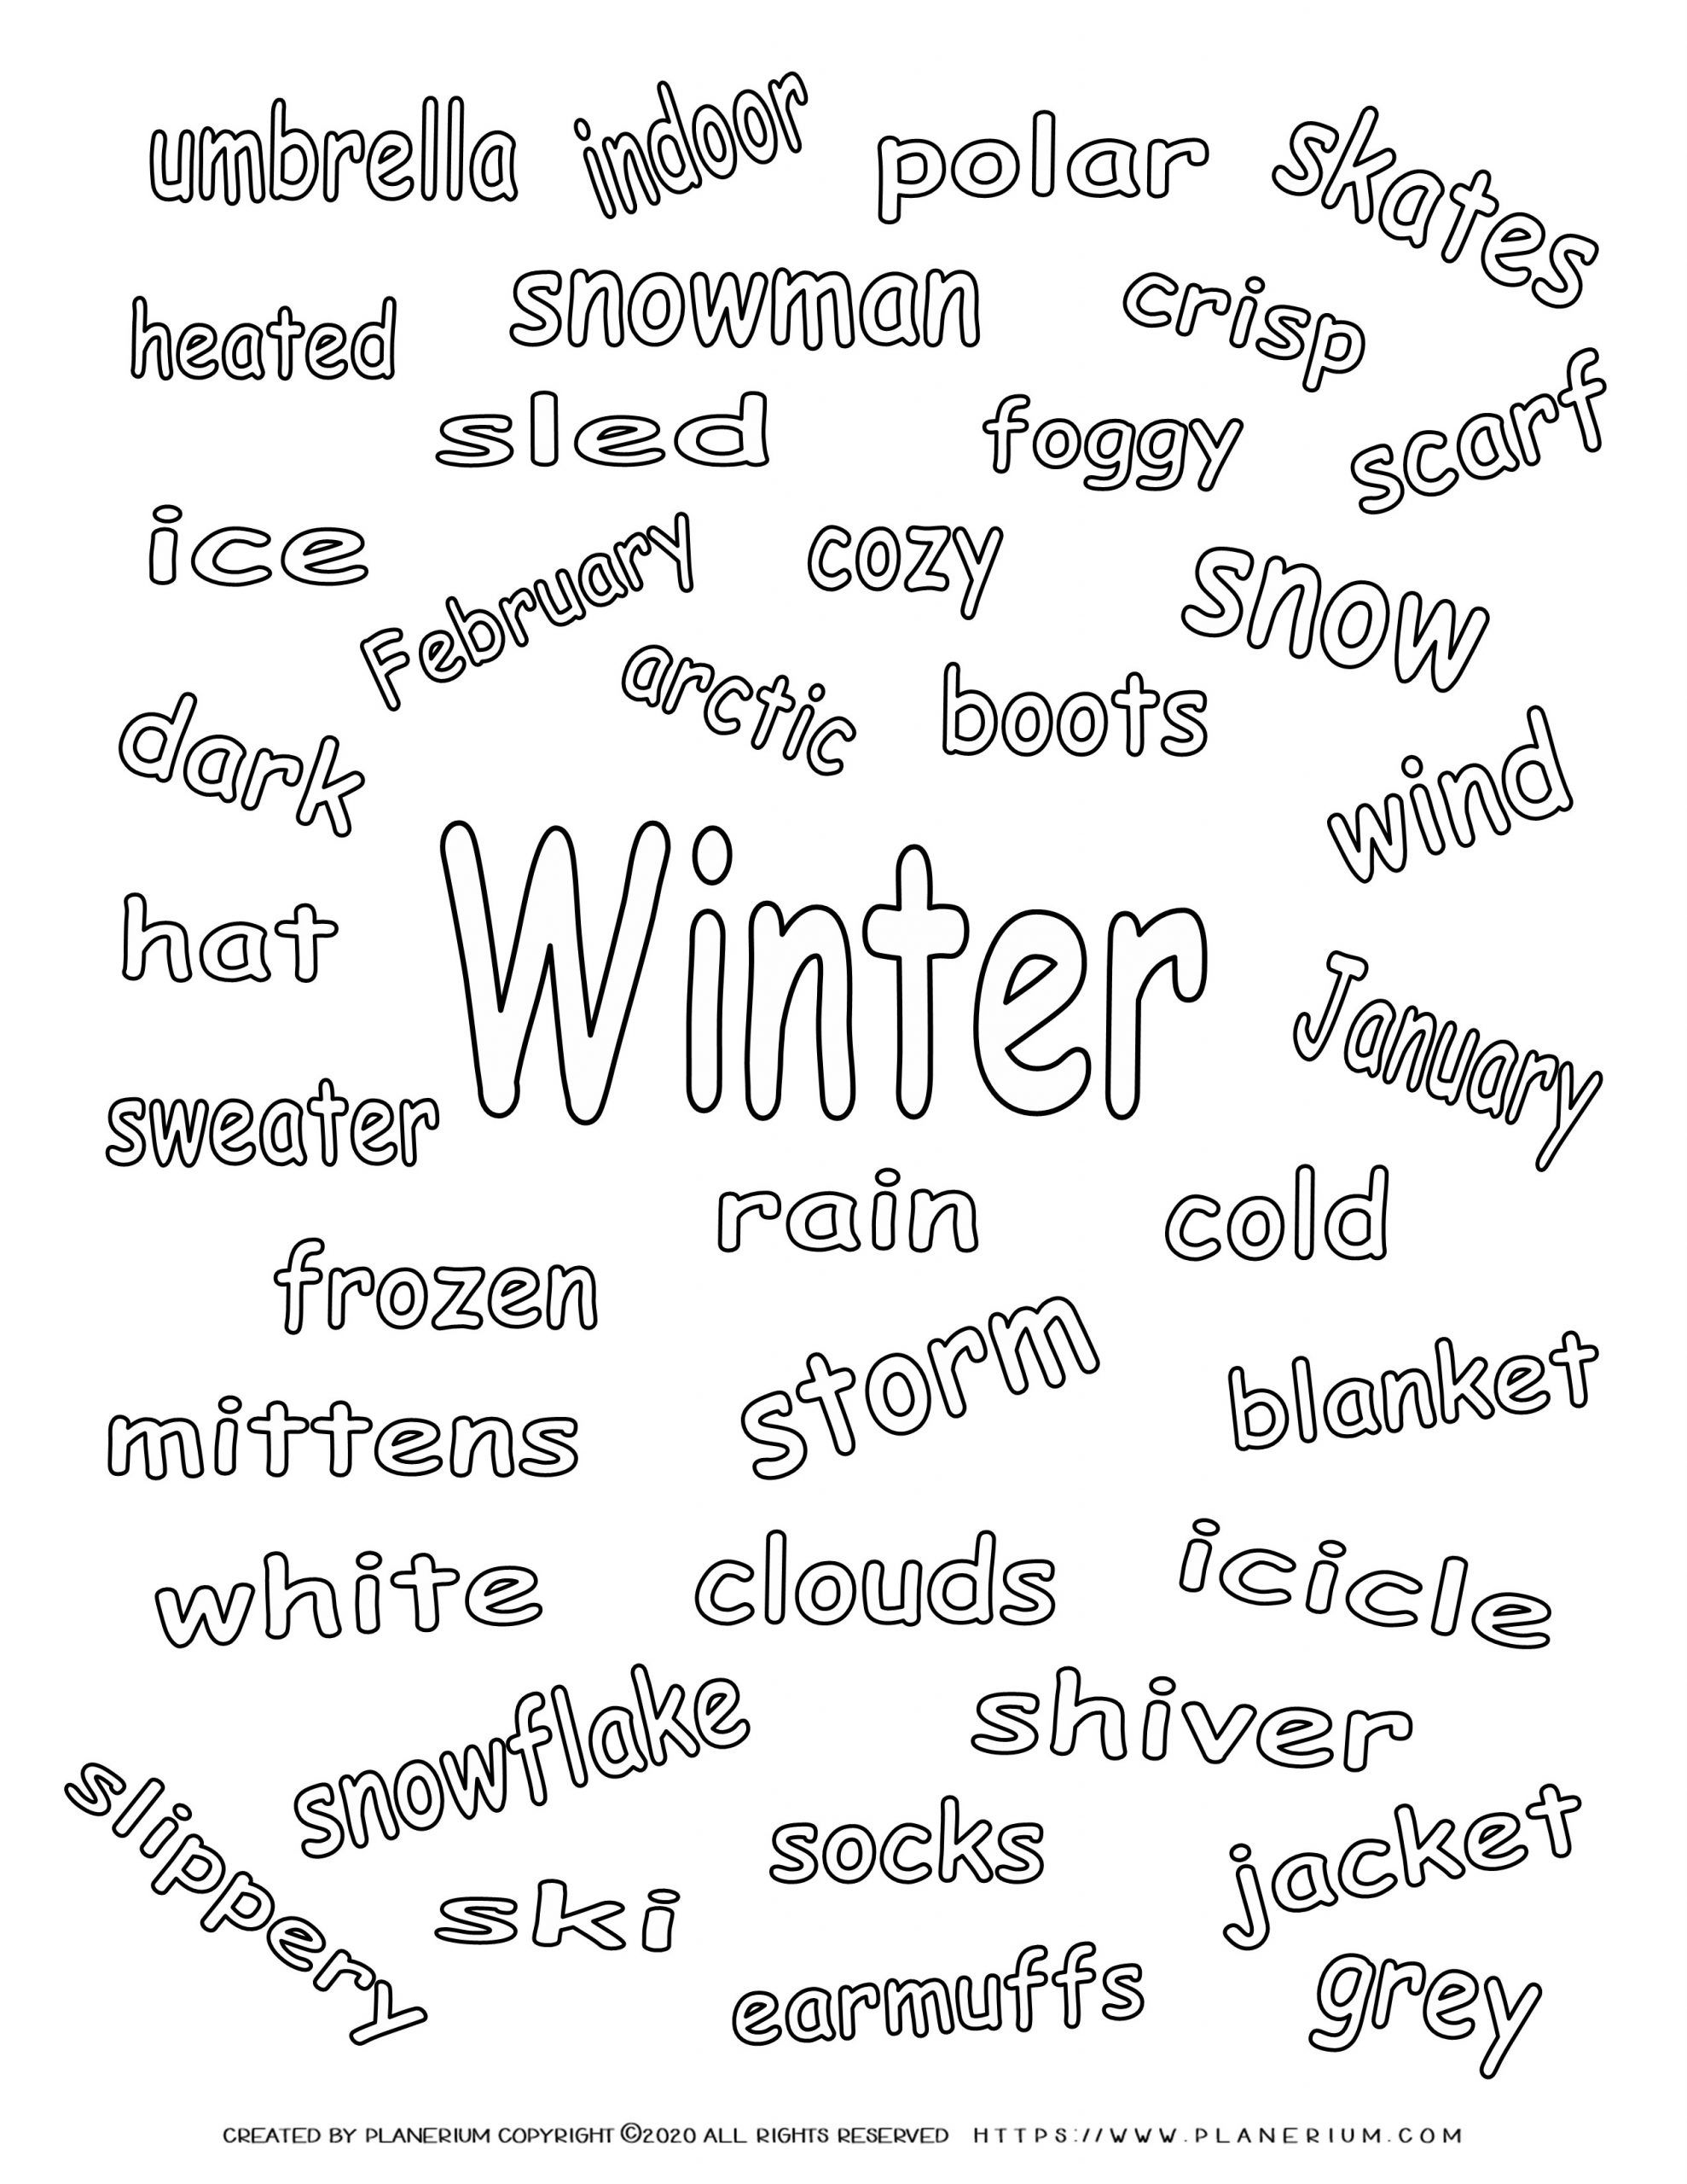 Winter Coloring Page - Related Words | Planerium